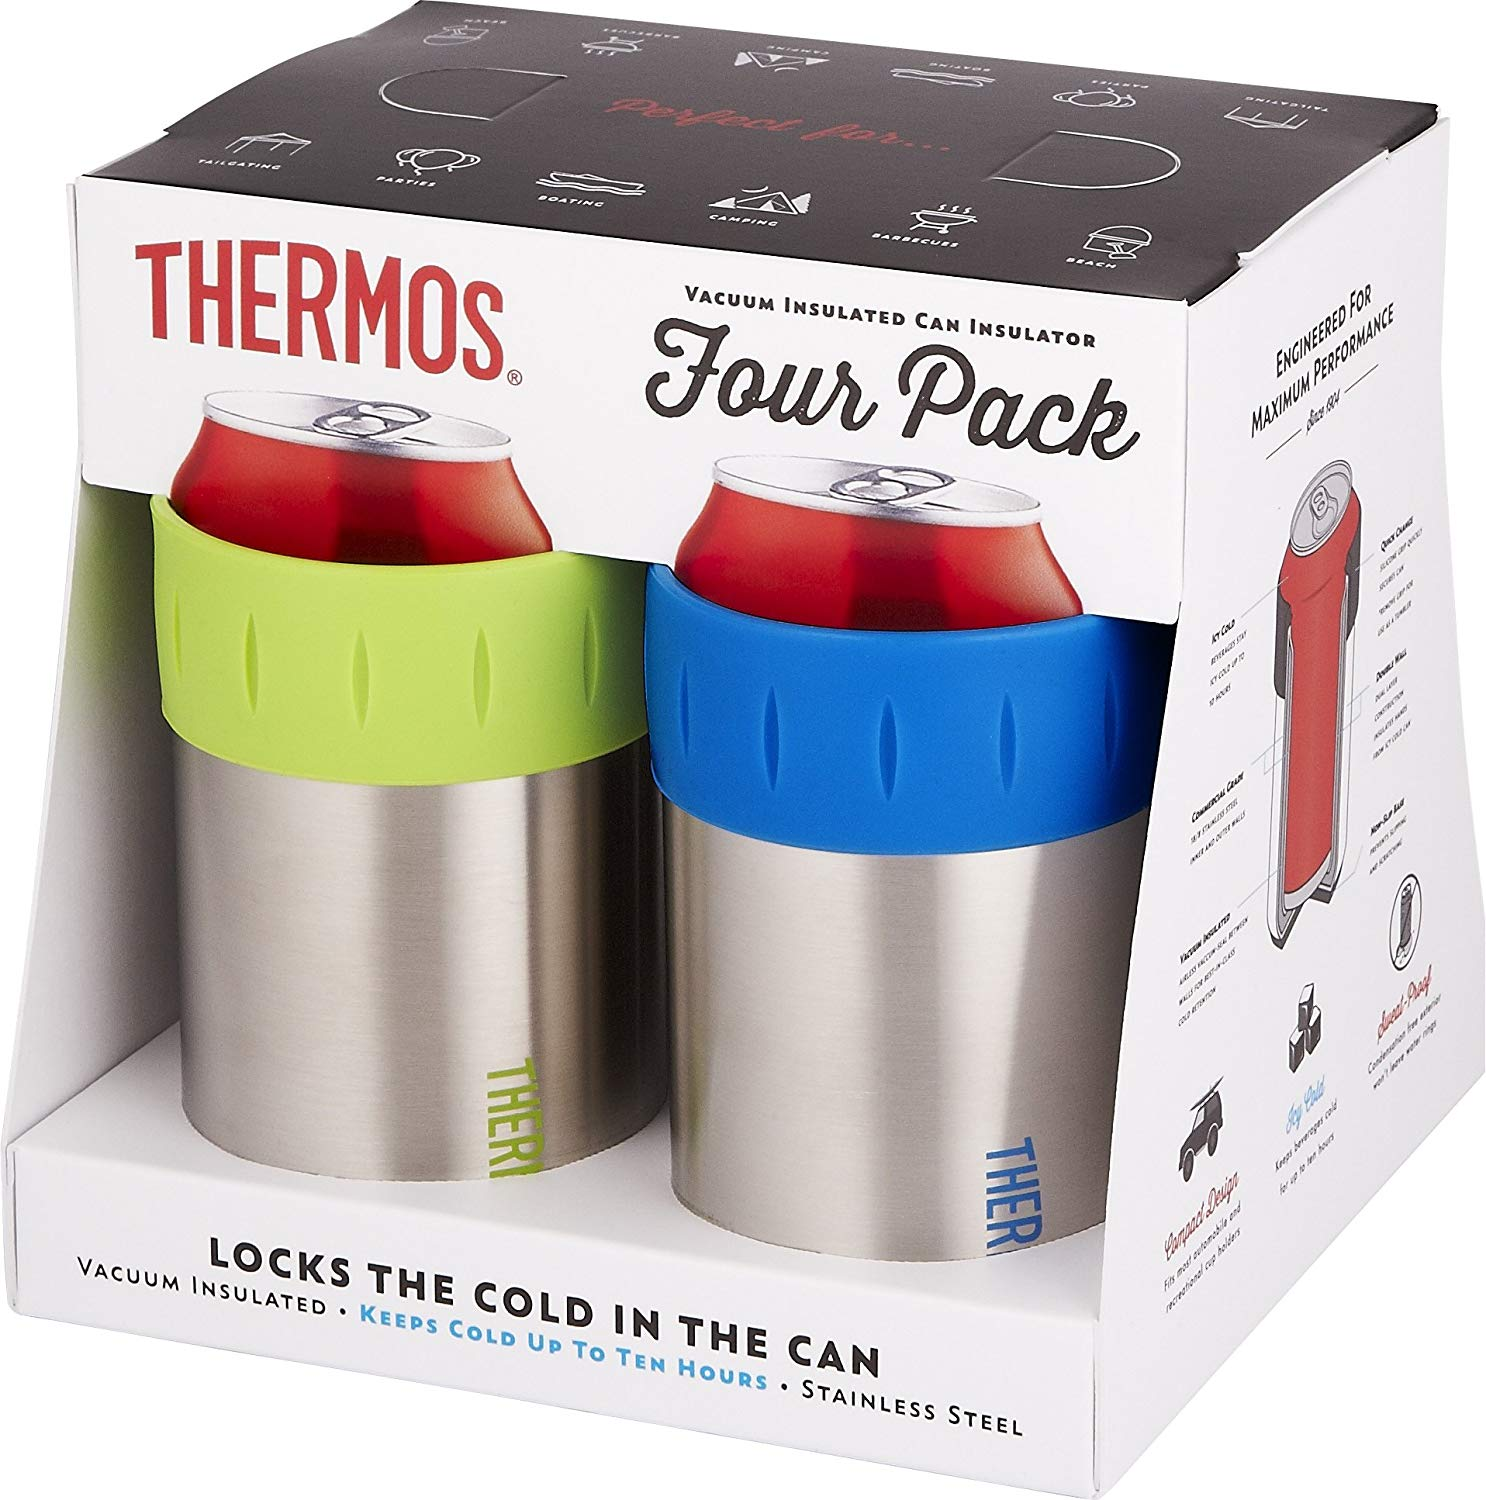 12-Ounce Stainless Steel Beverage Can Insulators 4pk